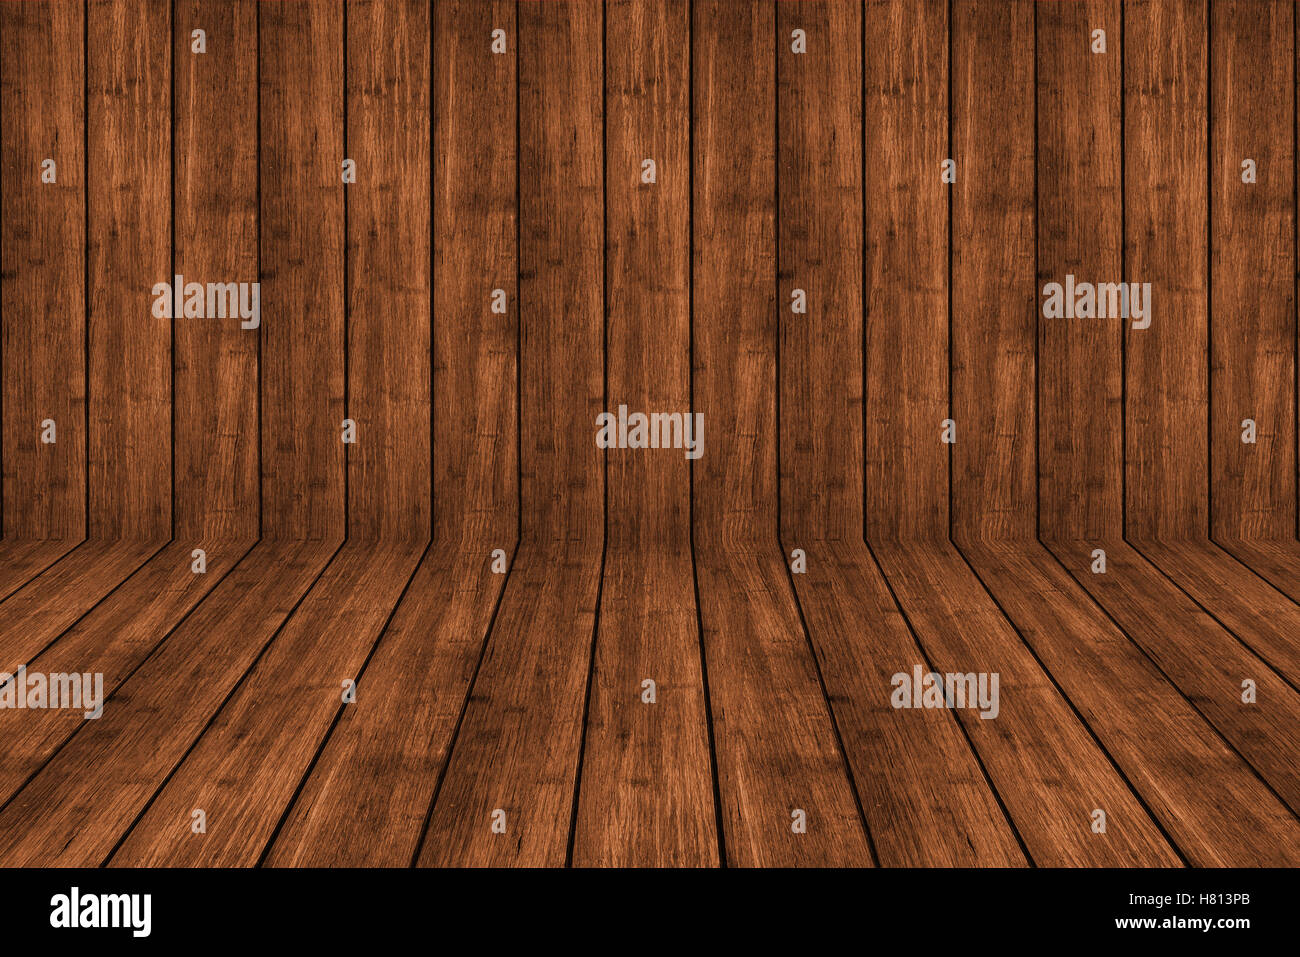 Dark Wood Texture Background Plank Panel Timber